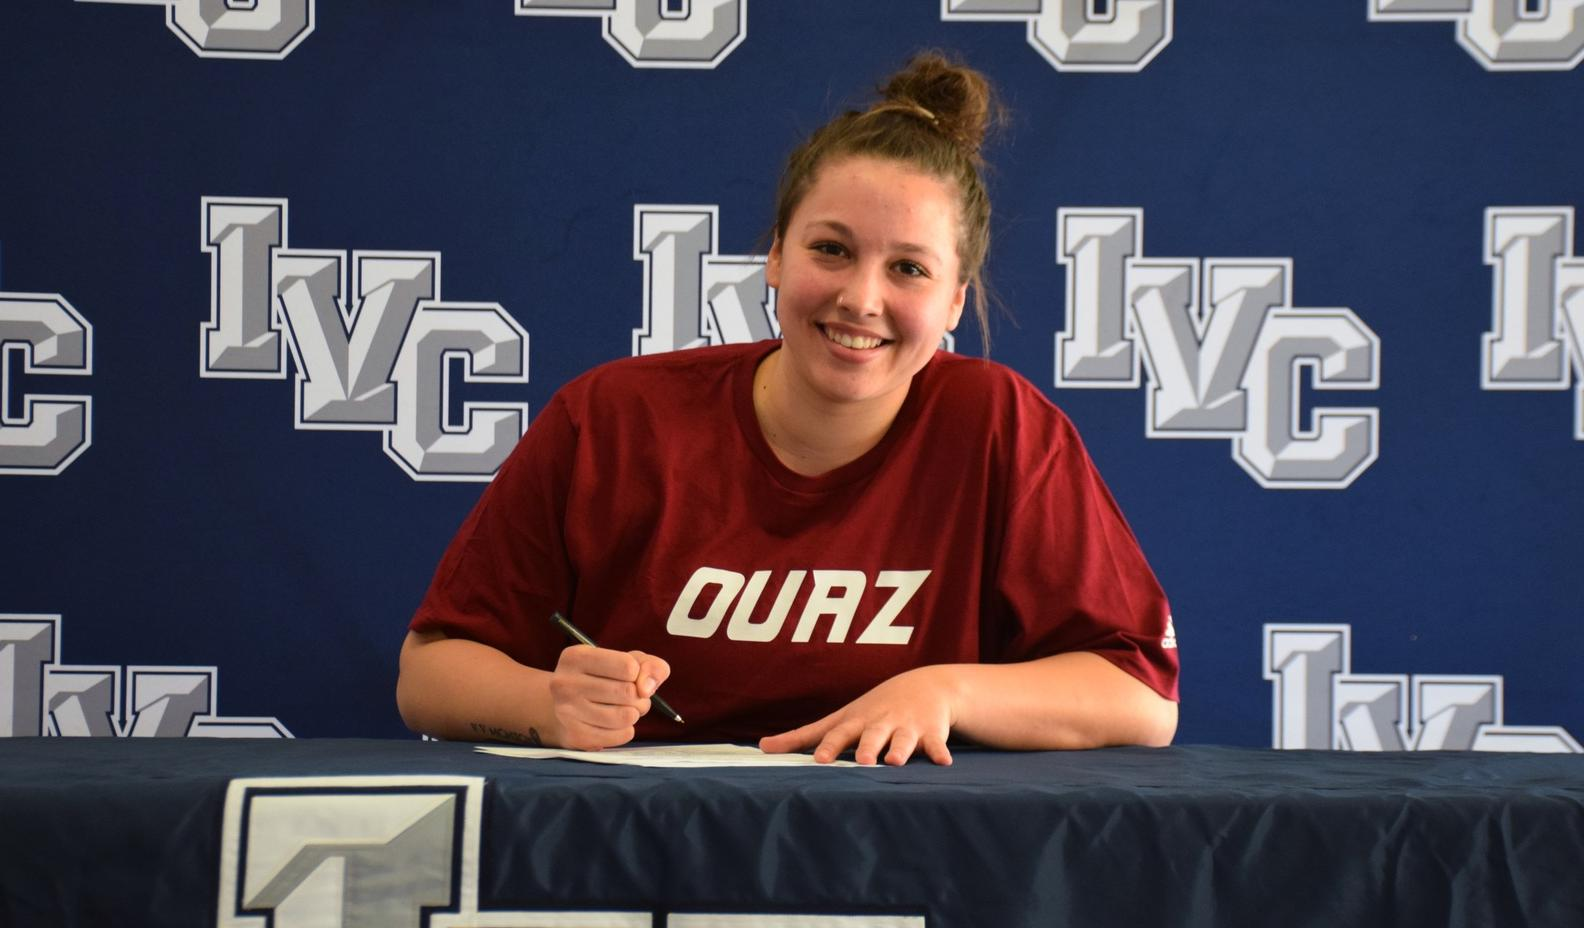 Women's basketball player Jenna Rodriguez signs with OUAZ